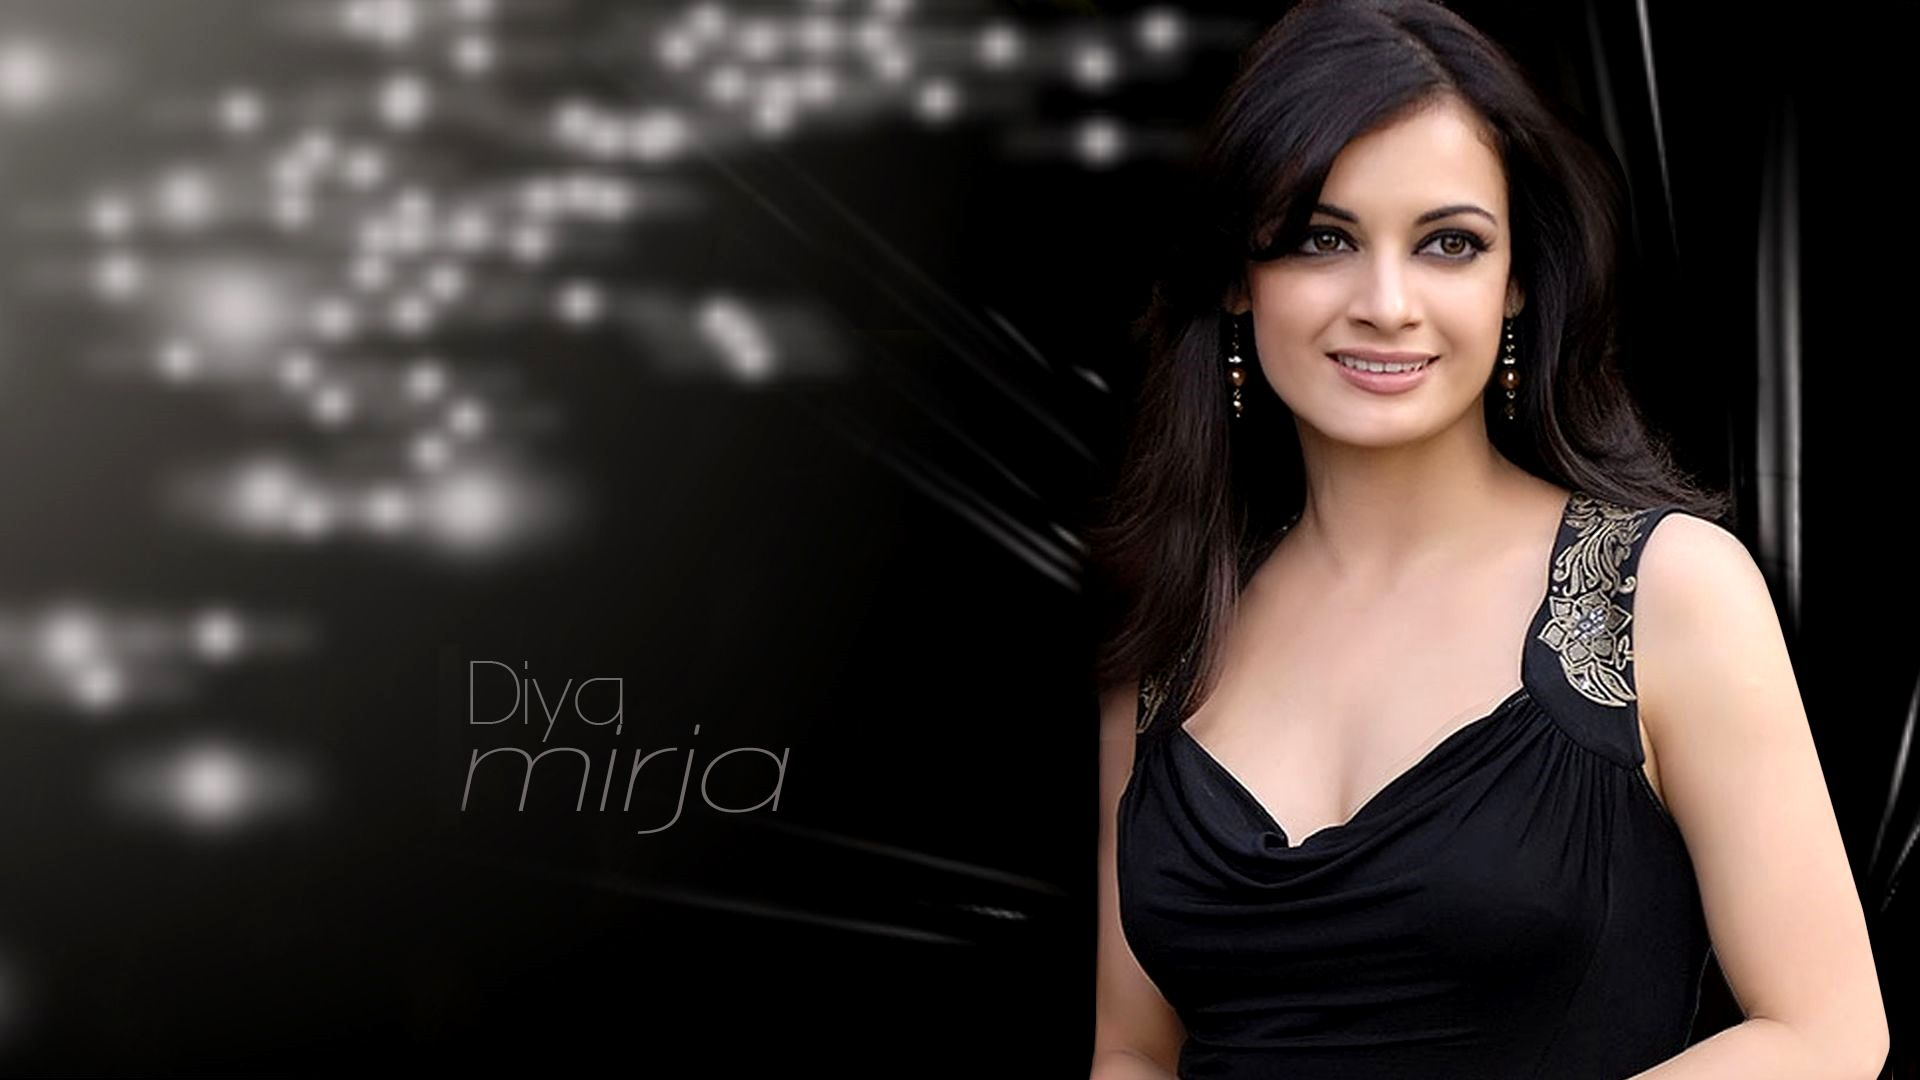 4k Wallpaper For Pc Actress Gallery